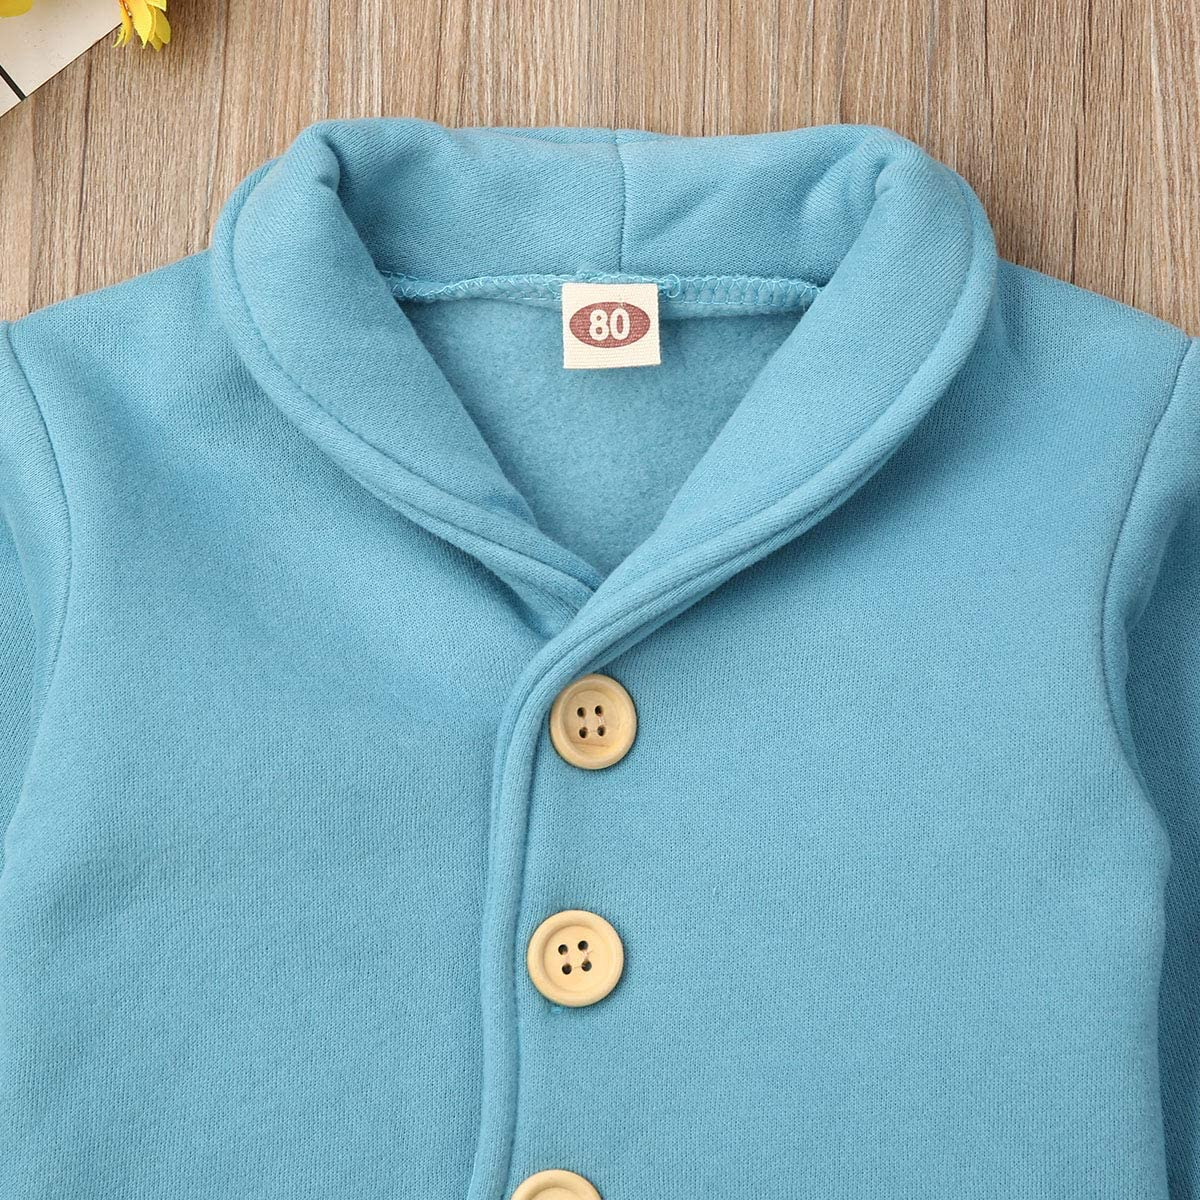 Marksmile Unisex Toddler Baby Winter Coat Long Sleeve Shirt Collar Button Down Solid Color Organic Cotton Sweater Jacket